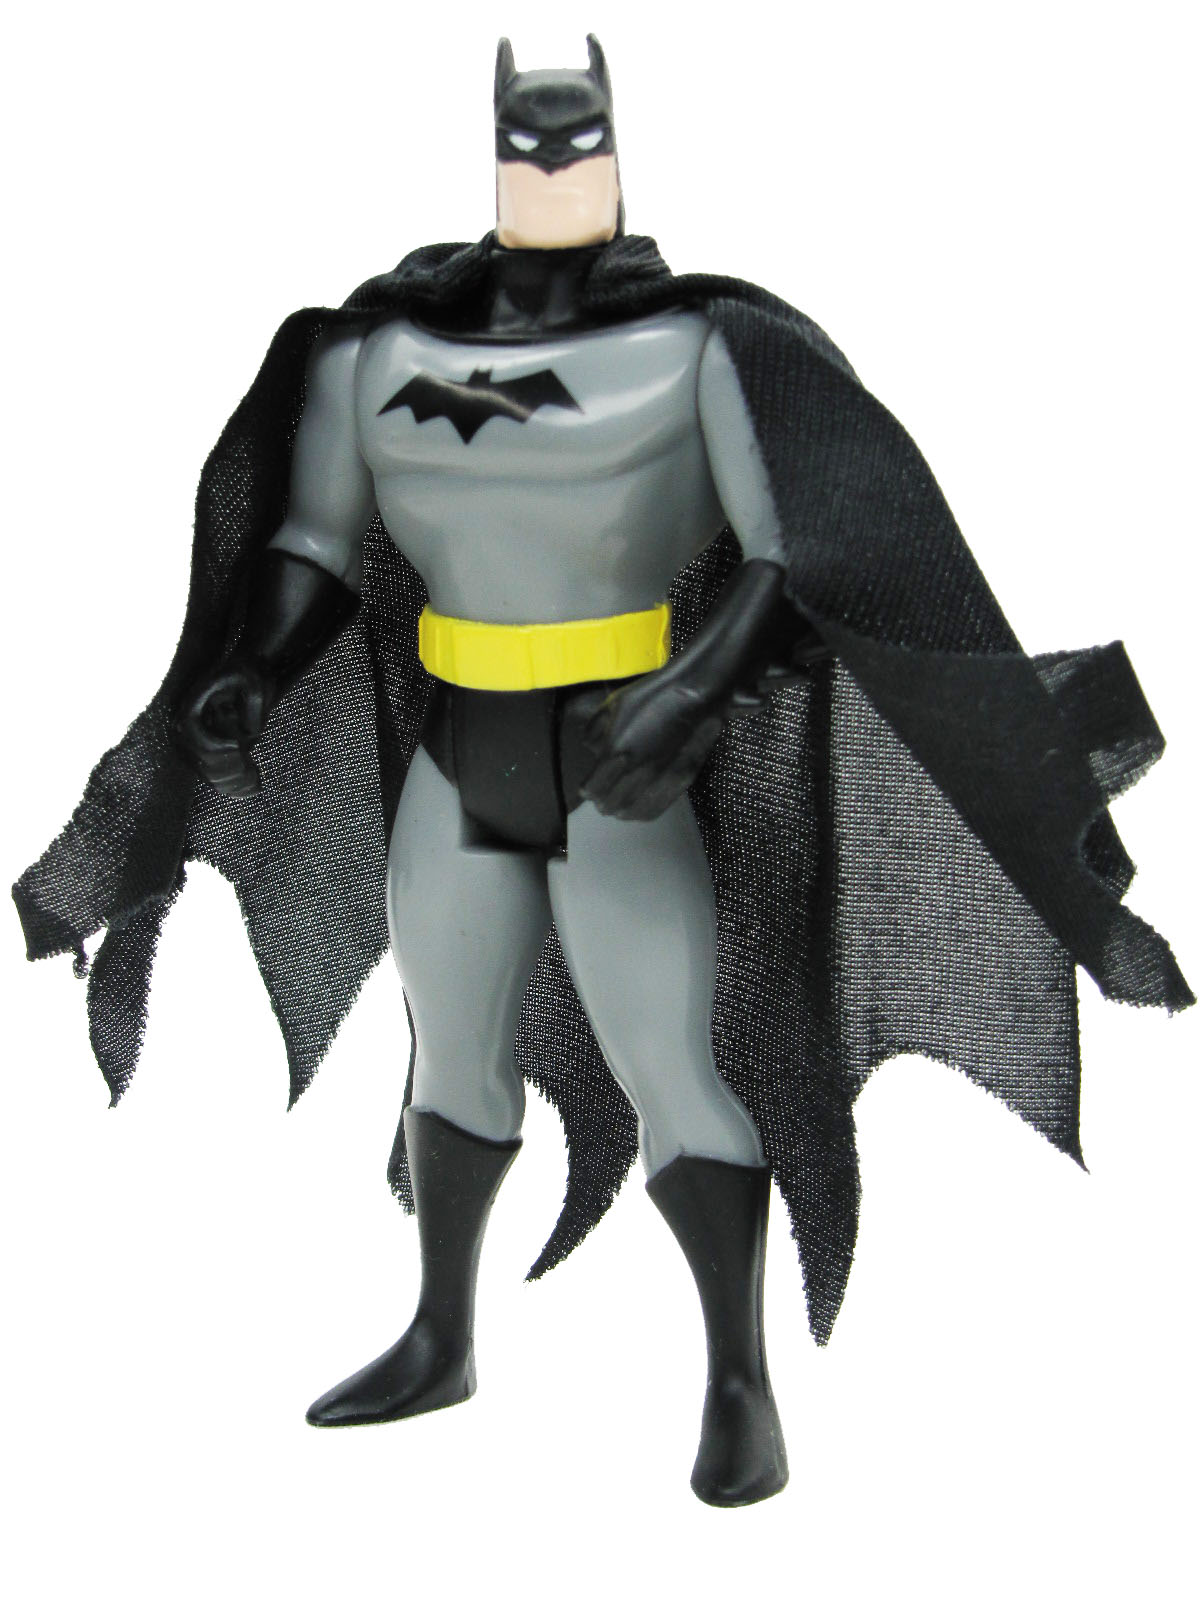 Batman The Animated Series Shadowcast Batplane Batman Complete